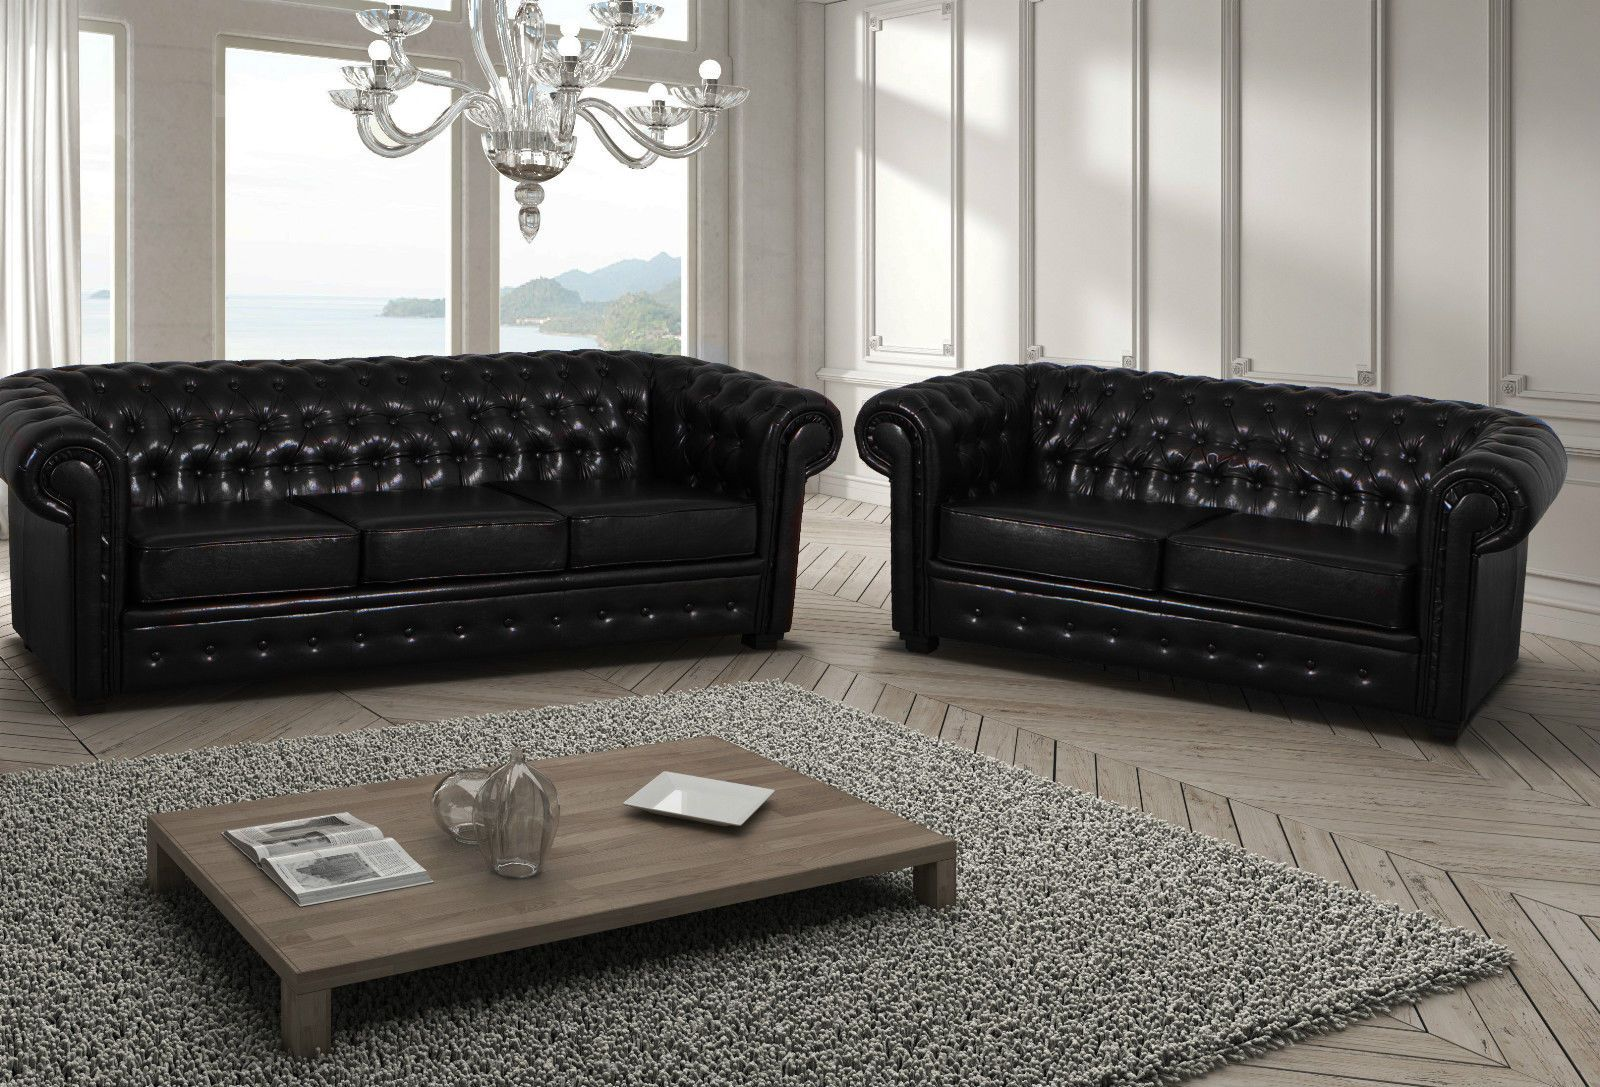 New Large Black 3 2 Seaters Chesterfield Sofas Settee Soft Leather